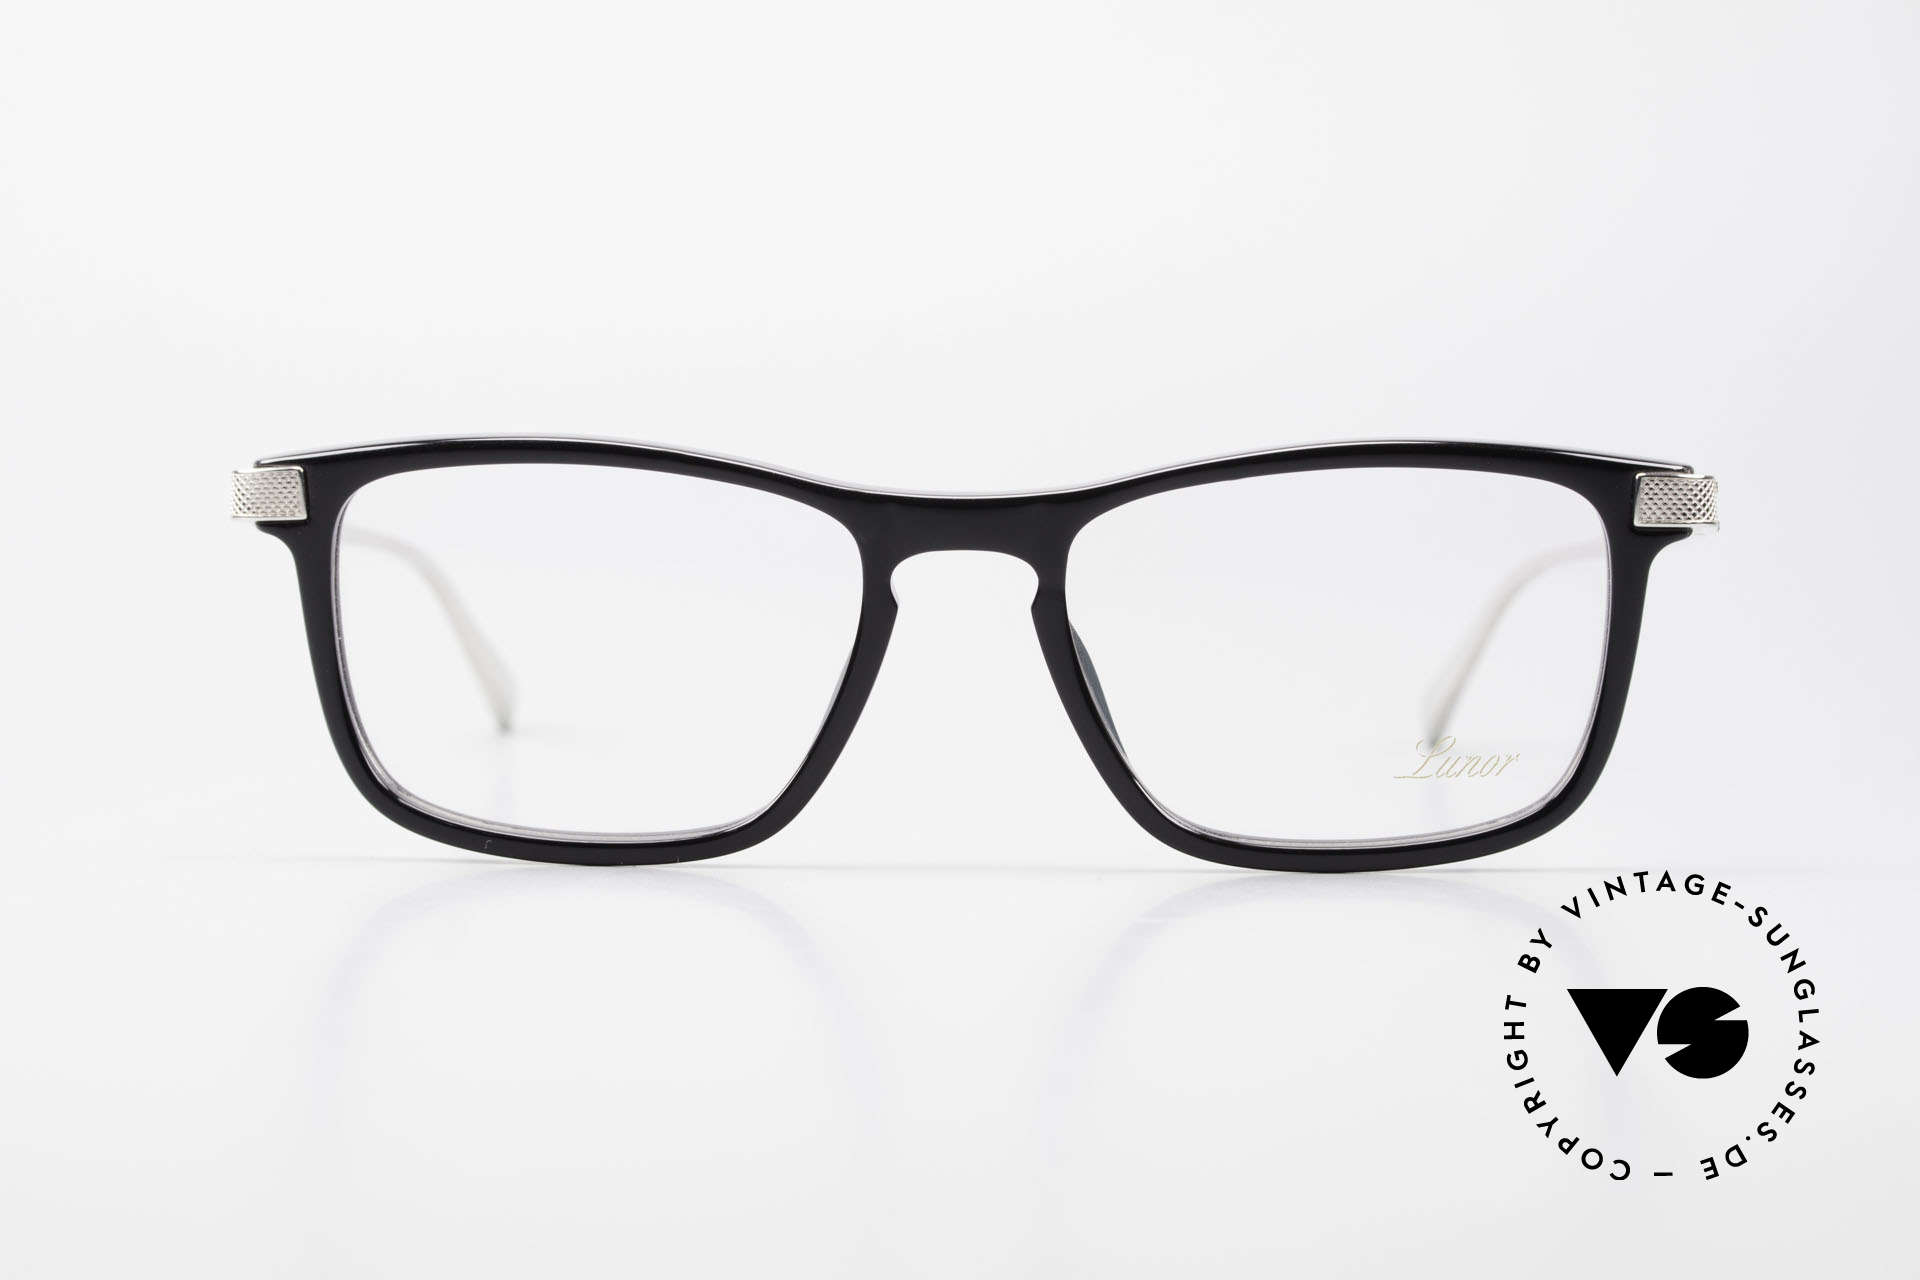 Lunor Imperial Anatomic Vintage Titanium Frame 2012, black acetate front with refined titanium temples, top!, Made for Men and Women